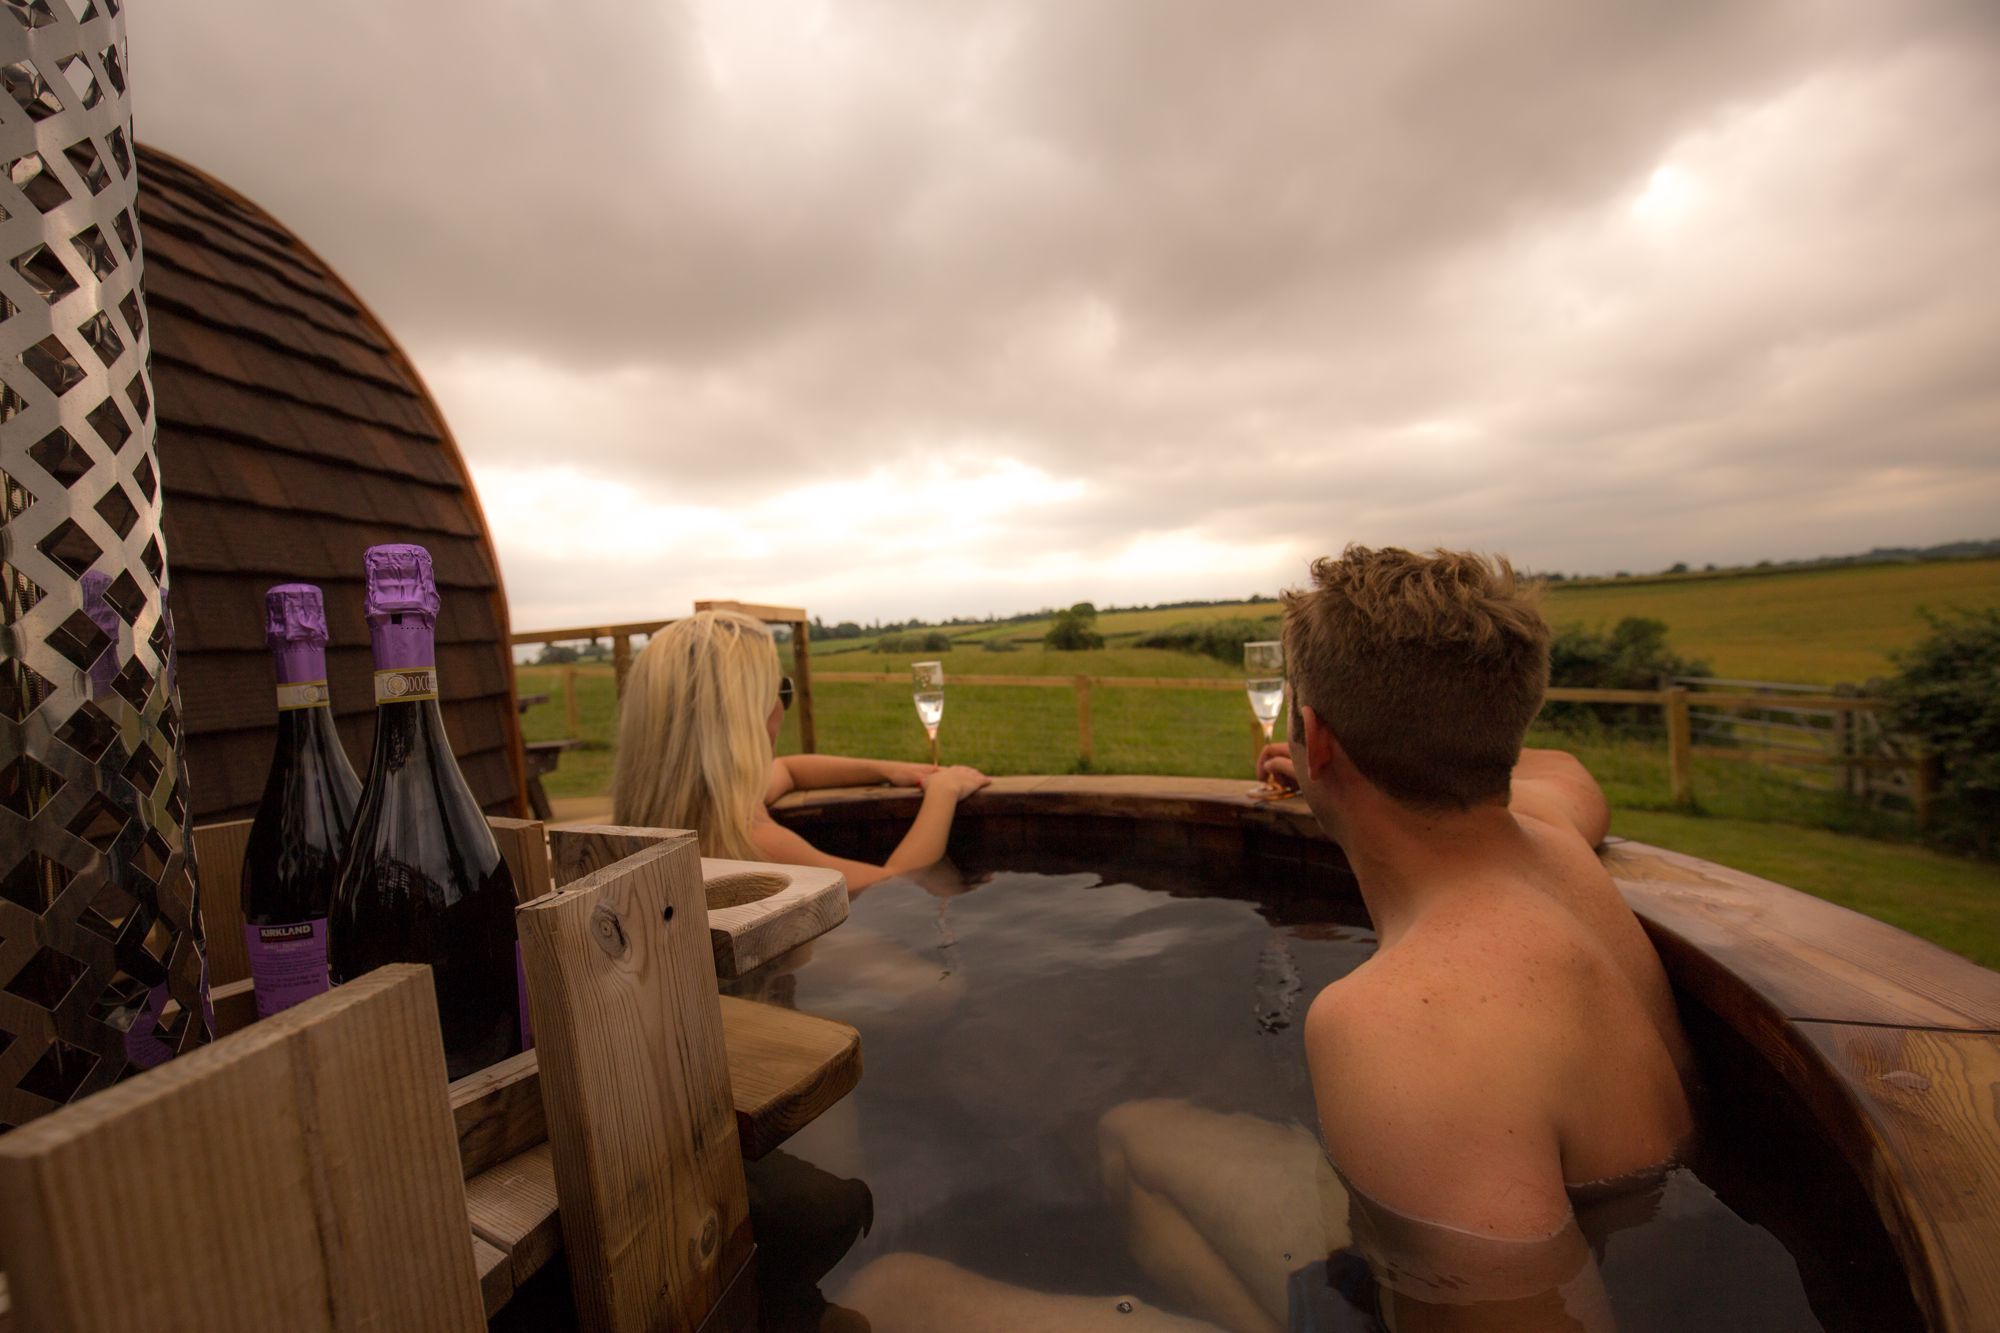 Hot Tub Glamping Near London | Best Glamping Accommodation